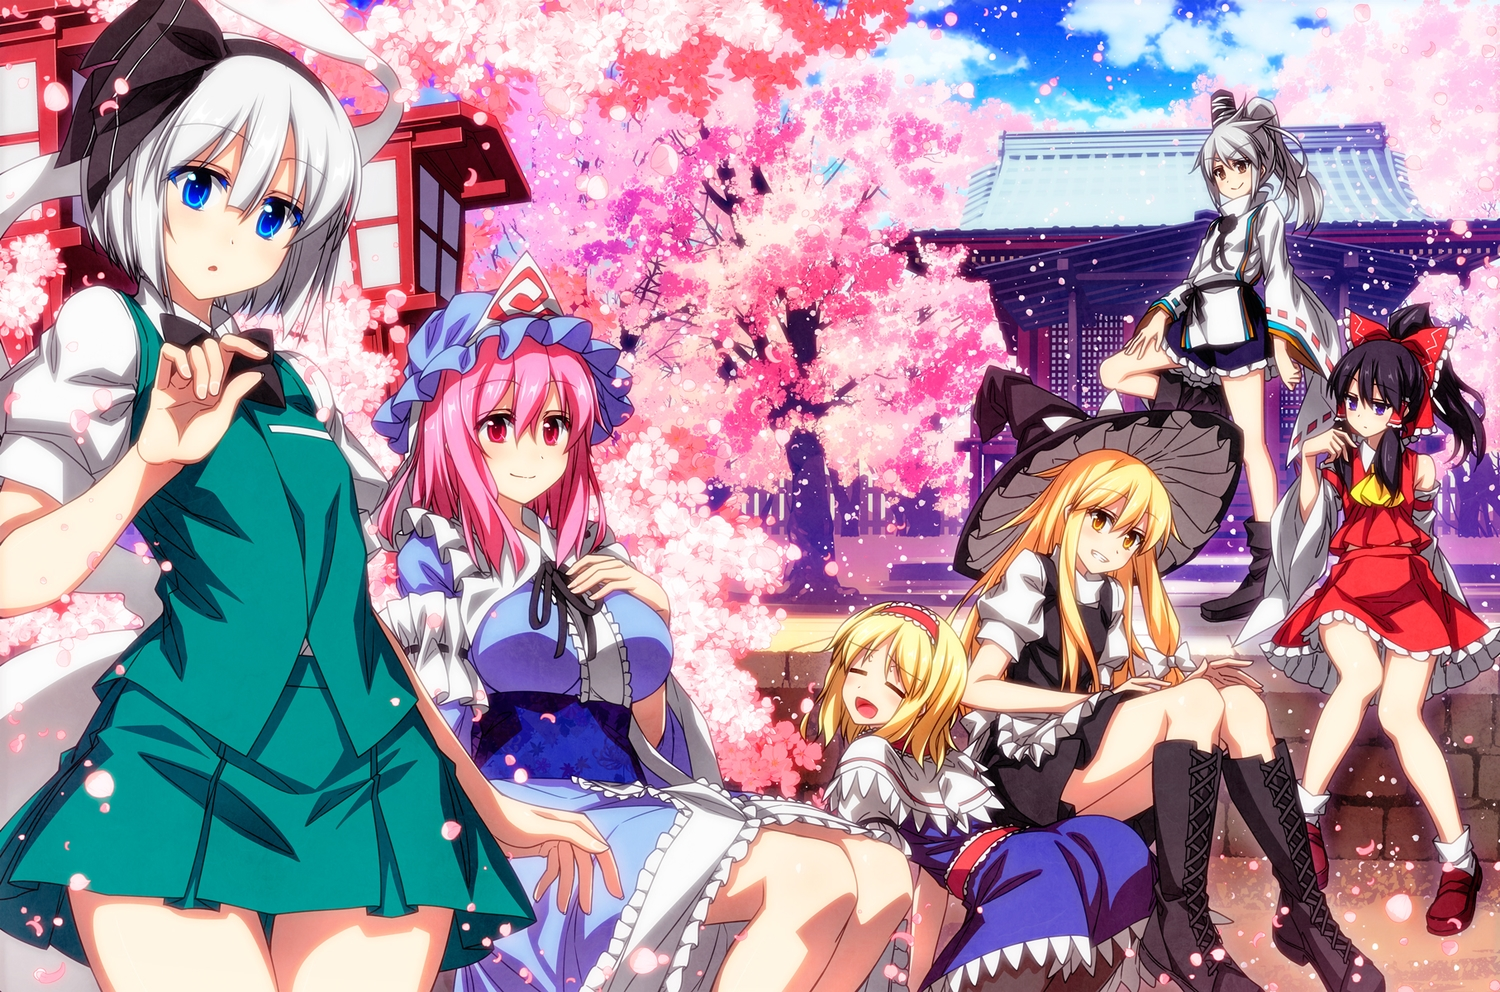 alice_margatroid black_hair blonde_hair blue_eyes boots bow breast_hold breasts brown_eyes cherry_blossoms dress flowers gray_hair group hakurei_reimu hat headband japanese_clothes katana kirisame_marisa konpaku_youmu miko mononobe_no_futo myon pantyhose petals pink_hair purple_eyes red_eyes saigyouji_yuyuko sazanami_mio short_hair shrine skirt sword touhou tree weapon witch witch_hat yellow_eyes